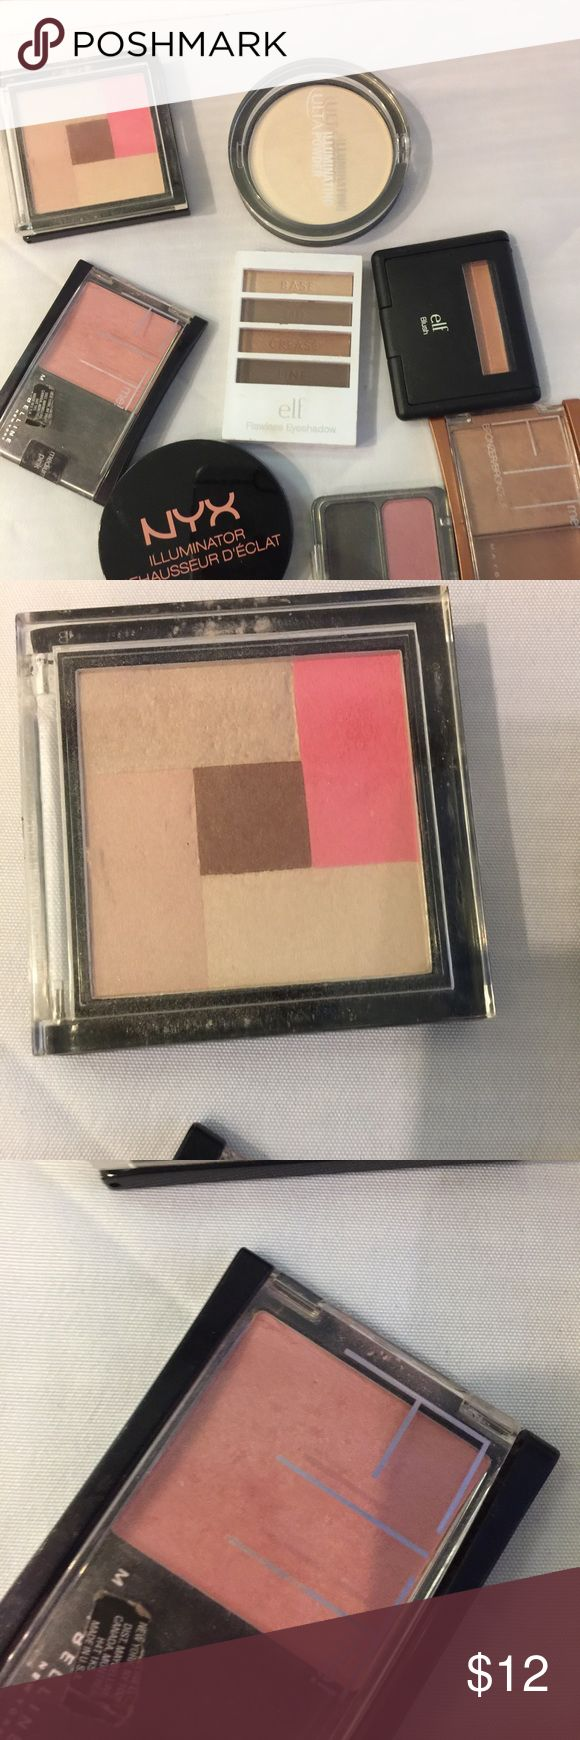 8 piece makeup bundle 8 piece bundle. Like new swatched either once or twice with a sponge NO fingers. No trades. No returns. Set includes:NYX highlighter in Ritualistic , covergirl blush in Rubor, maybelline bronzer in deep bronze Elf blush in candid coral. Maybelline blush in medium pink, Palladio blush and highlight in Fairy Pink Elf flawless eyeshadow in Beautiful browns( brand new) Ulta illuminating powder in yellow diamond (like new) price Firm. First pic is blush in bundle :maybelline…